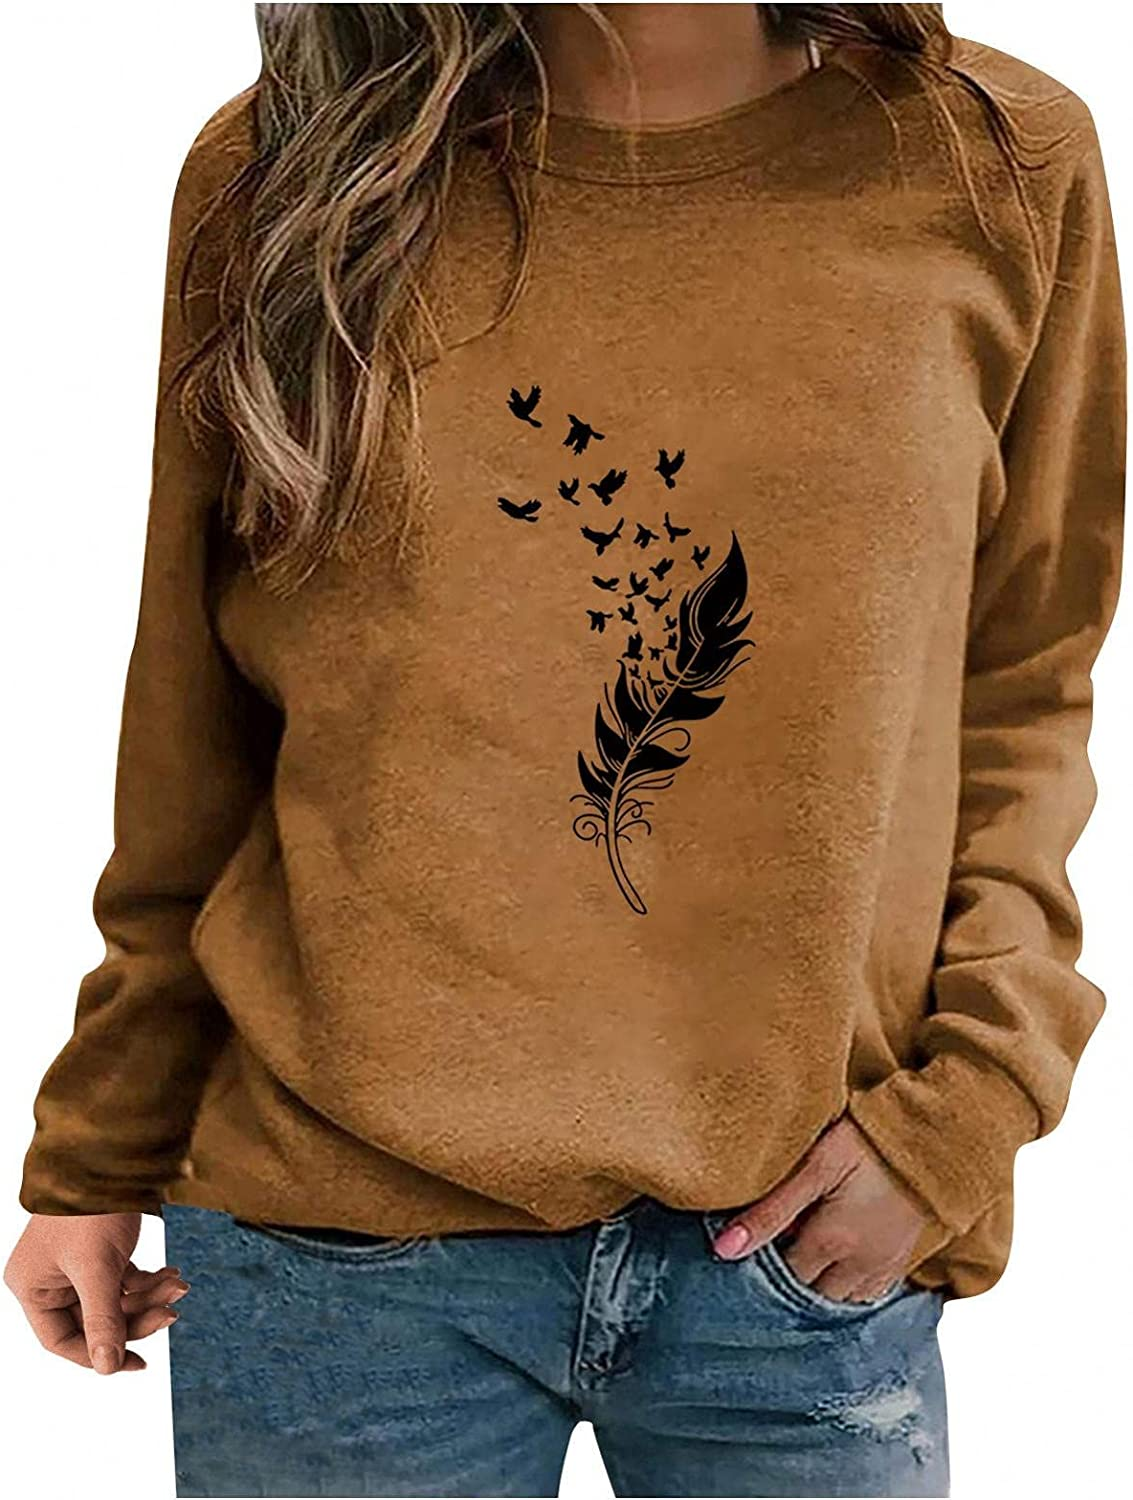 Sweatshirts for Women,Women Sweatshirt Plus Size Graphic Vintage Long Sleeve Feather Loose Shirts Casual Pullover